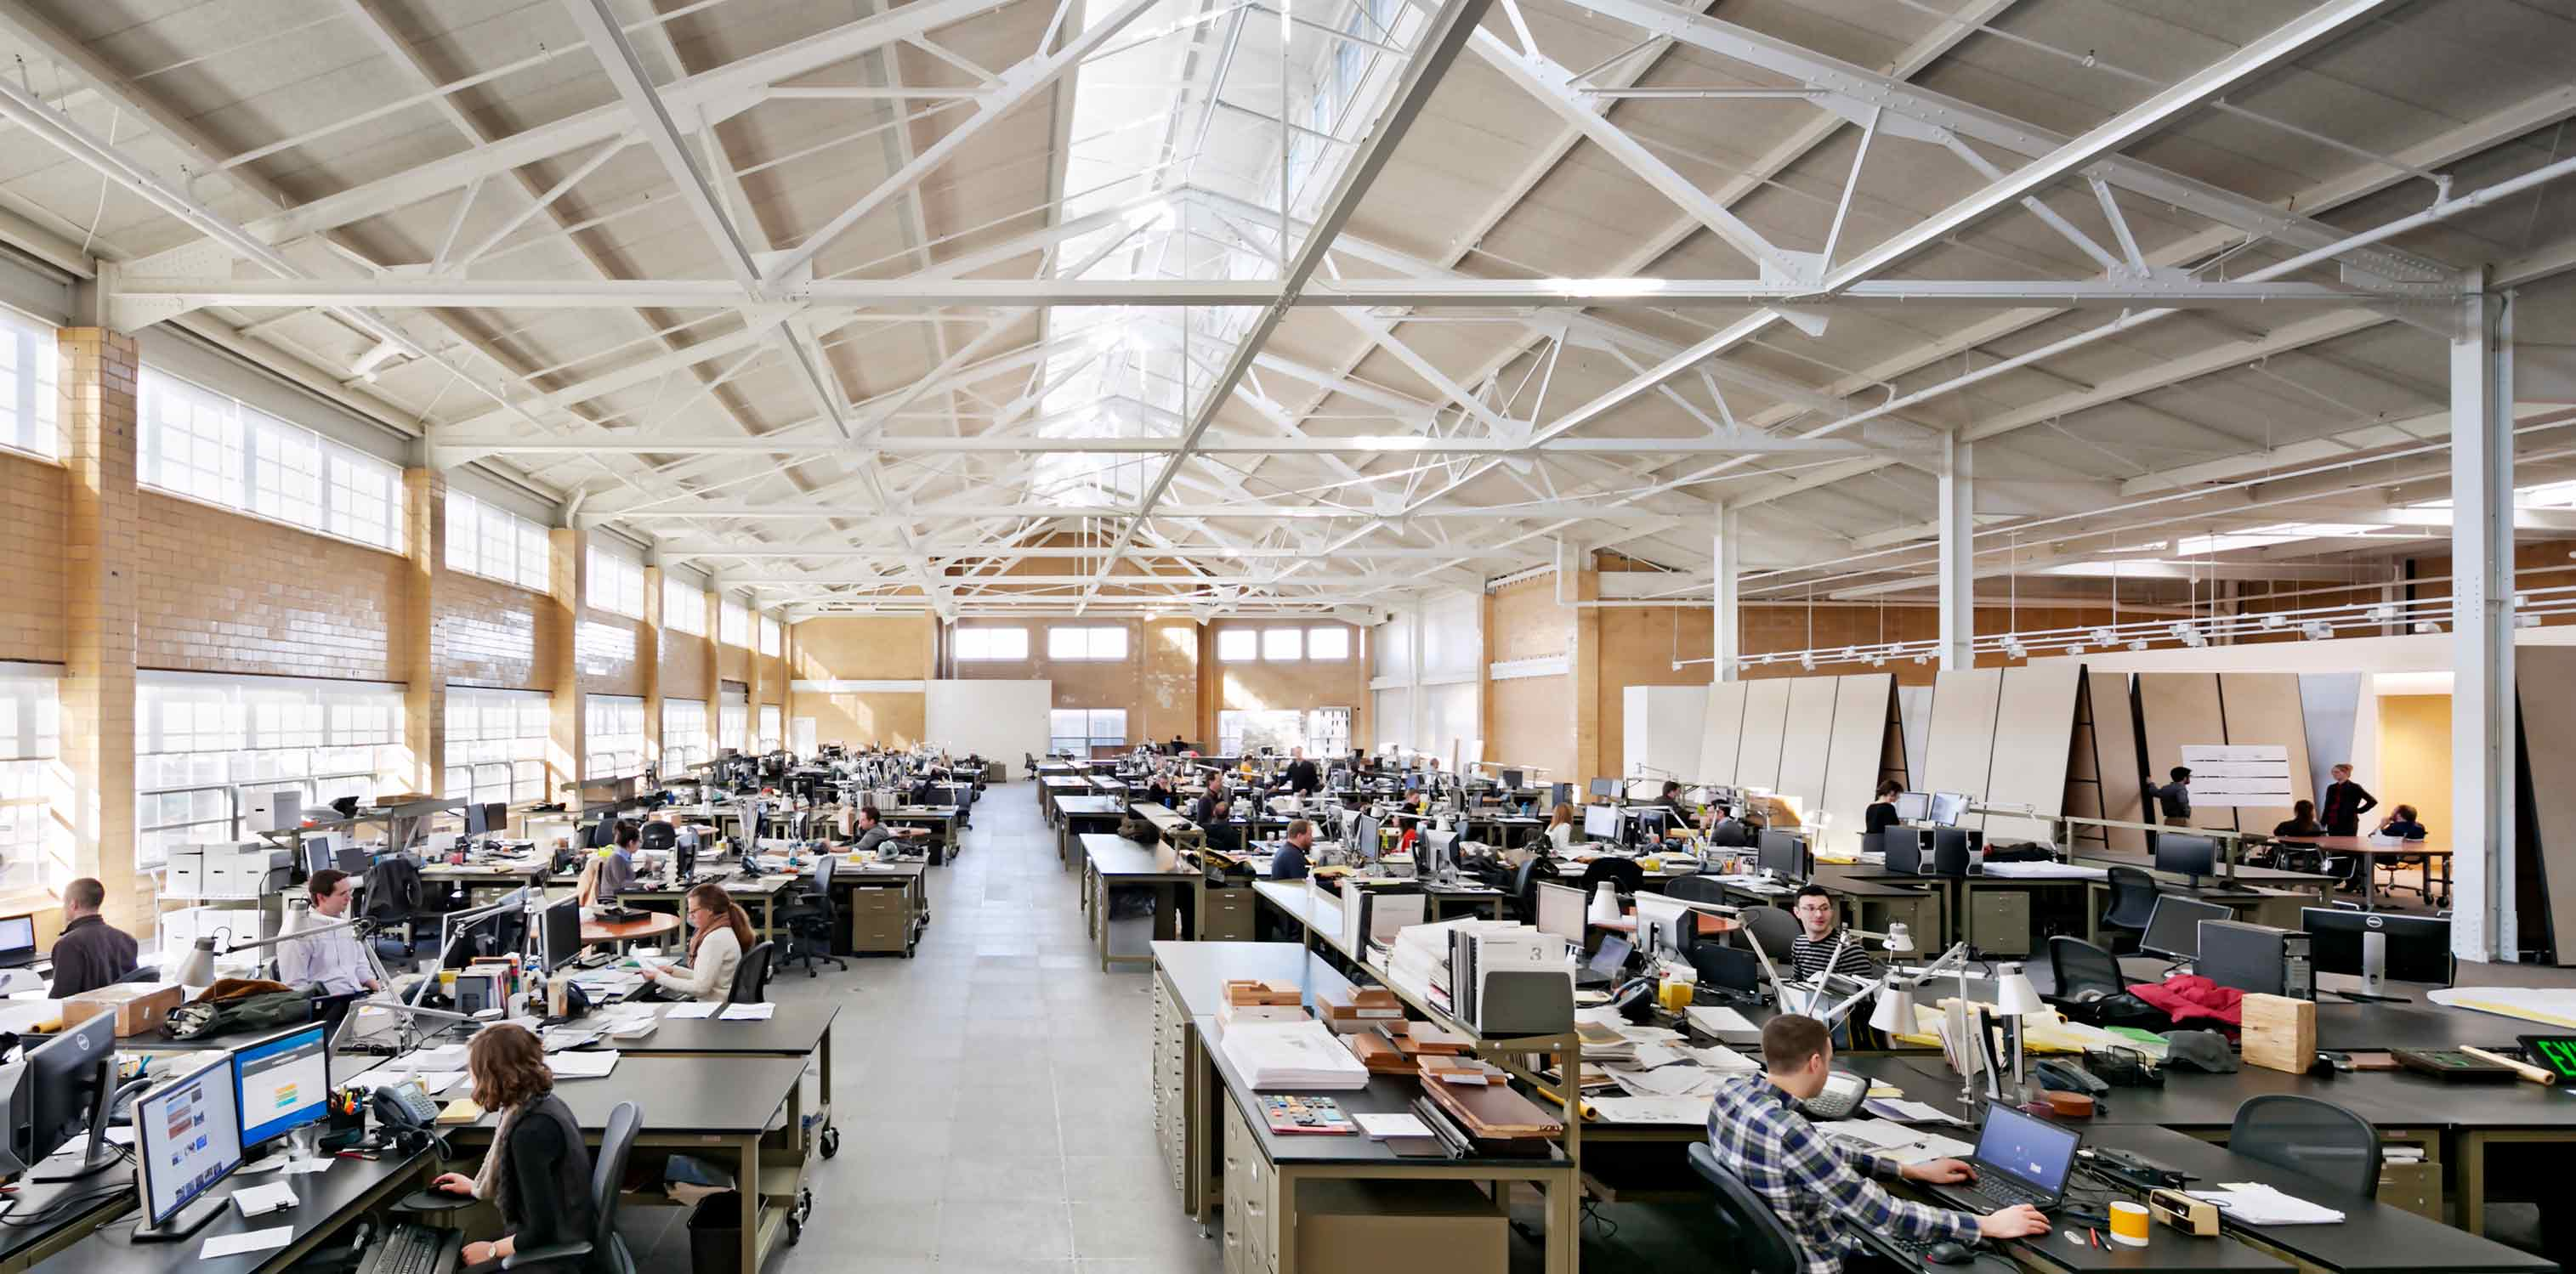 <p>Our large, daylit studio is designed to support our flexible, collaborative, and transdisciplinary culture.<br>&nbsp;<br /><small>&copy;Michael Moran</small></p>